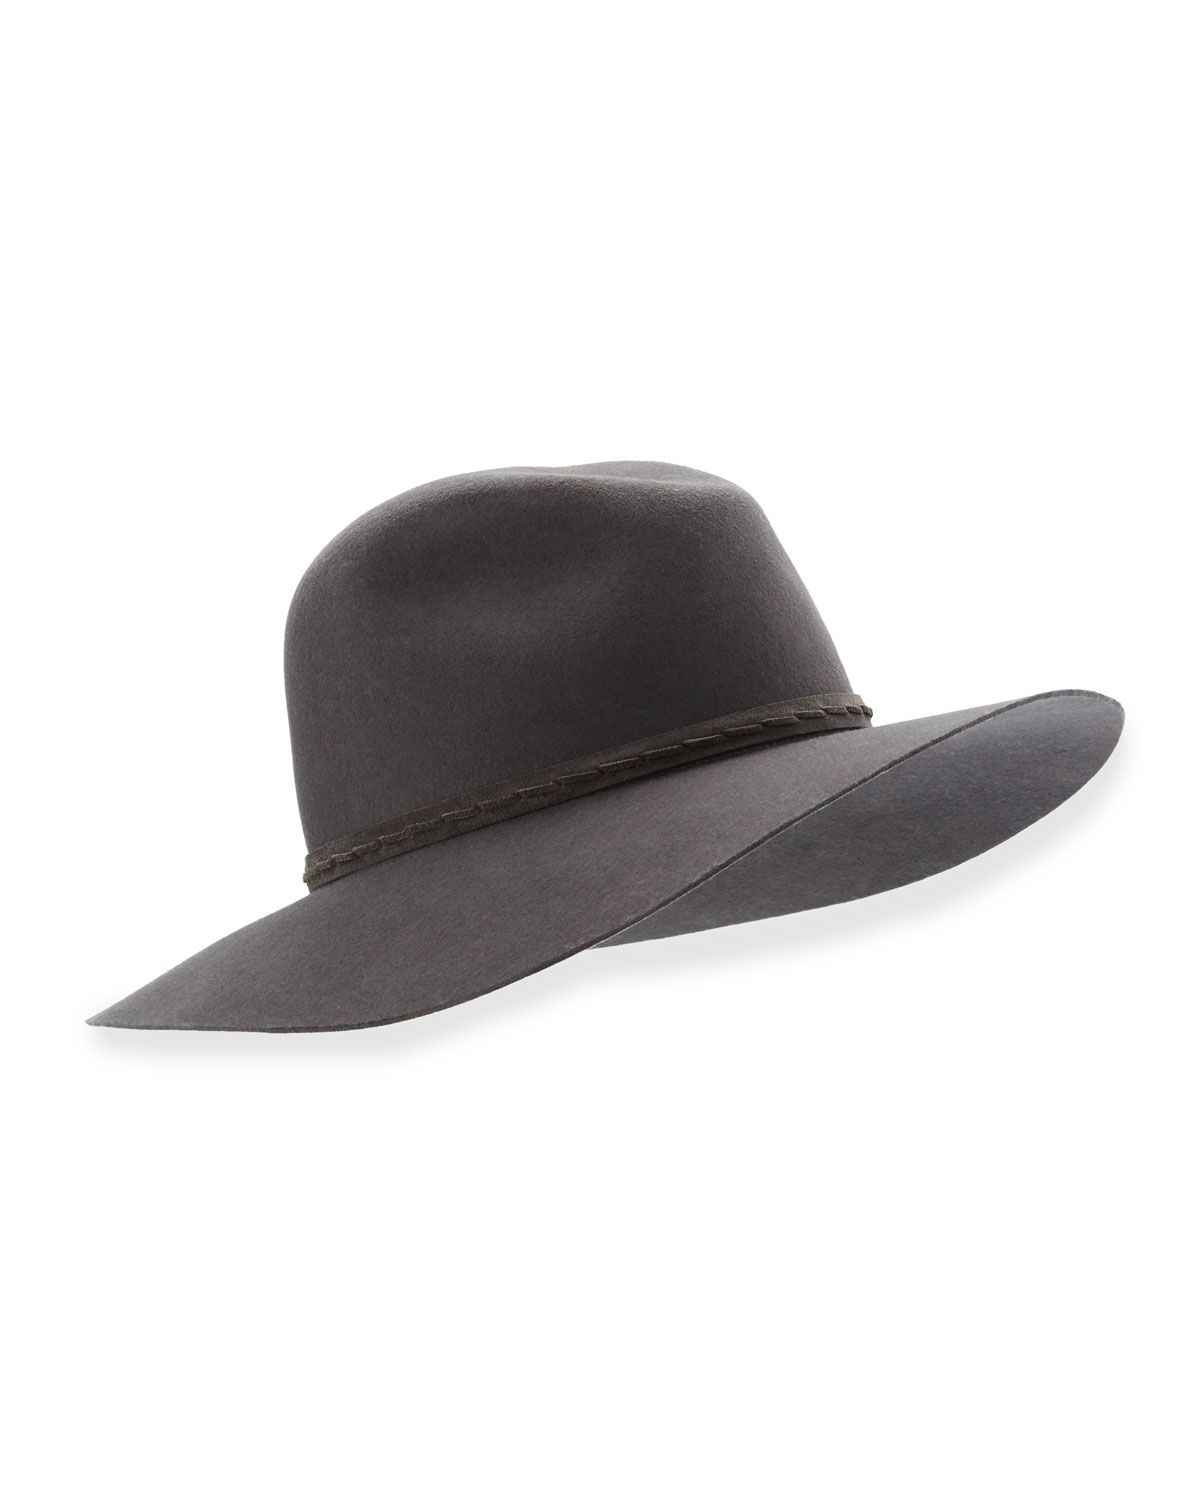 c45eaeb64974 Rag & Bone fedora hat in wool felt features a wide, floppy brim. Round  crown with pinched center. Whipstitched leather hat band at break.